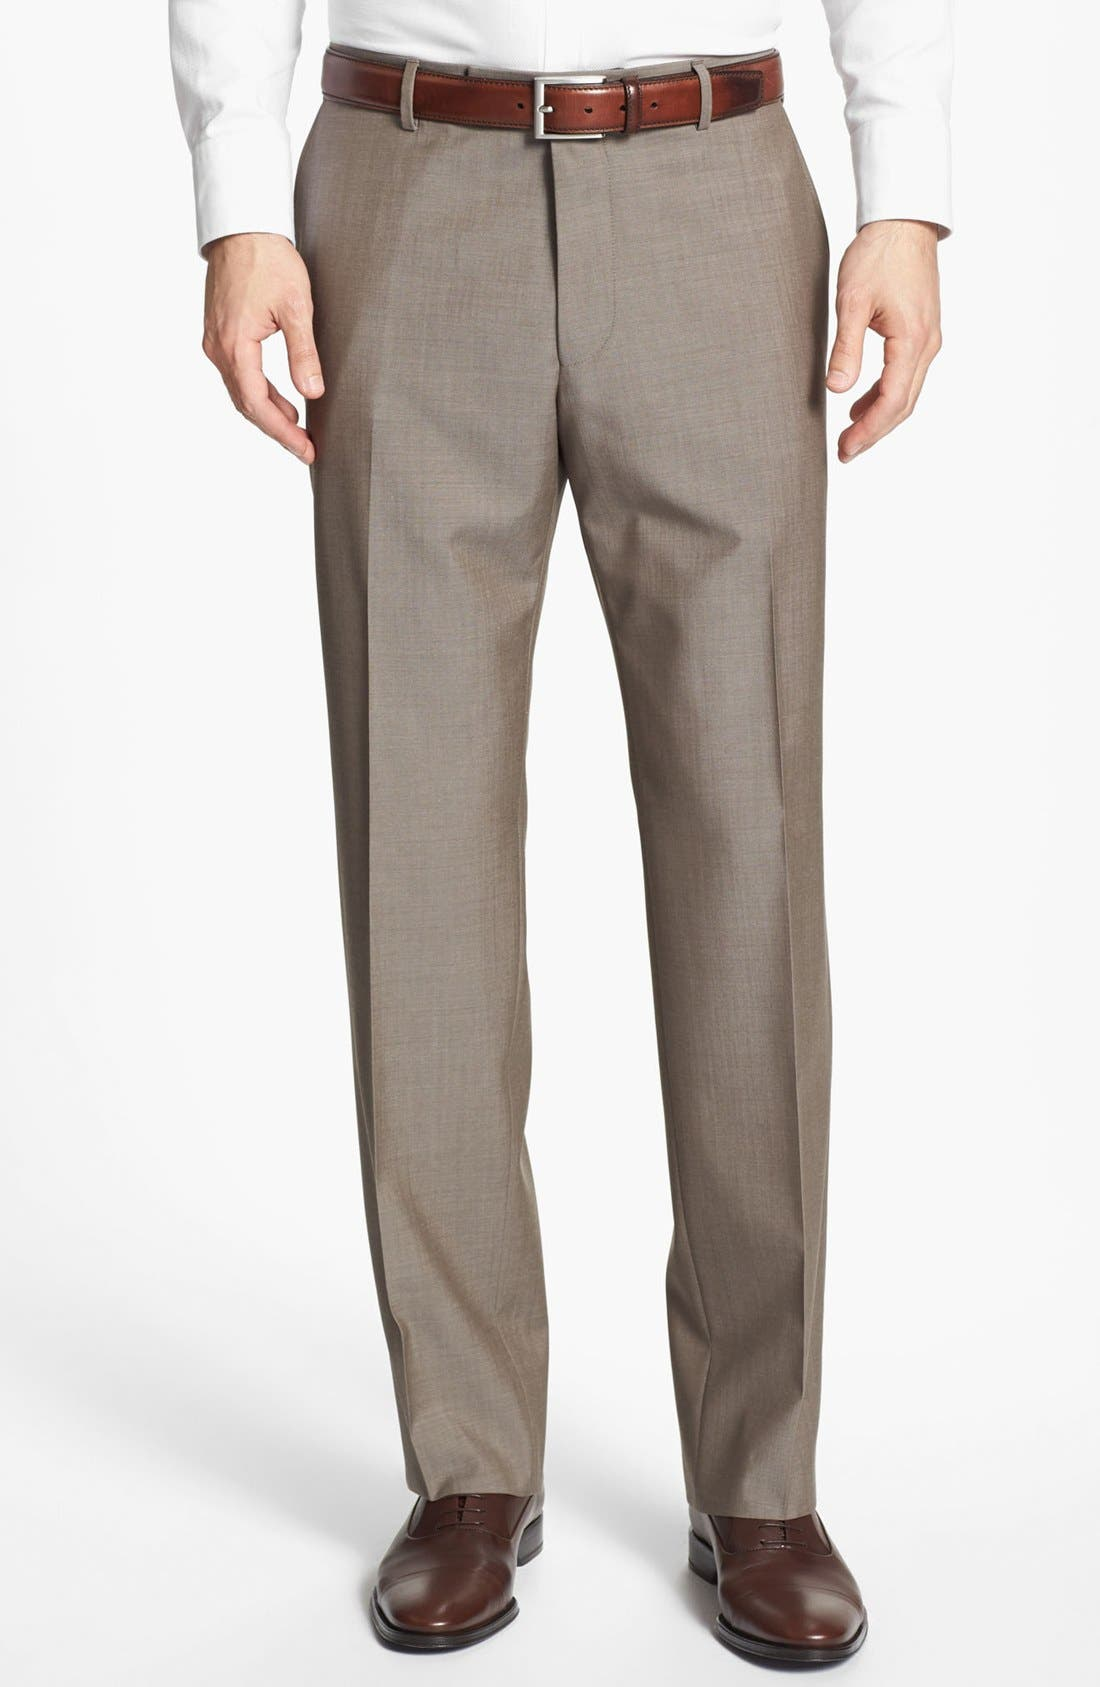 BOSS HUGO BOSS 'Jeffrey US' Flat Front Pinpoint Wool Trousers,                         Main,                         color, Brown